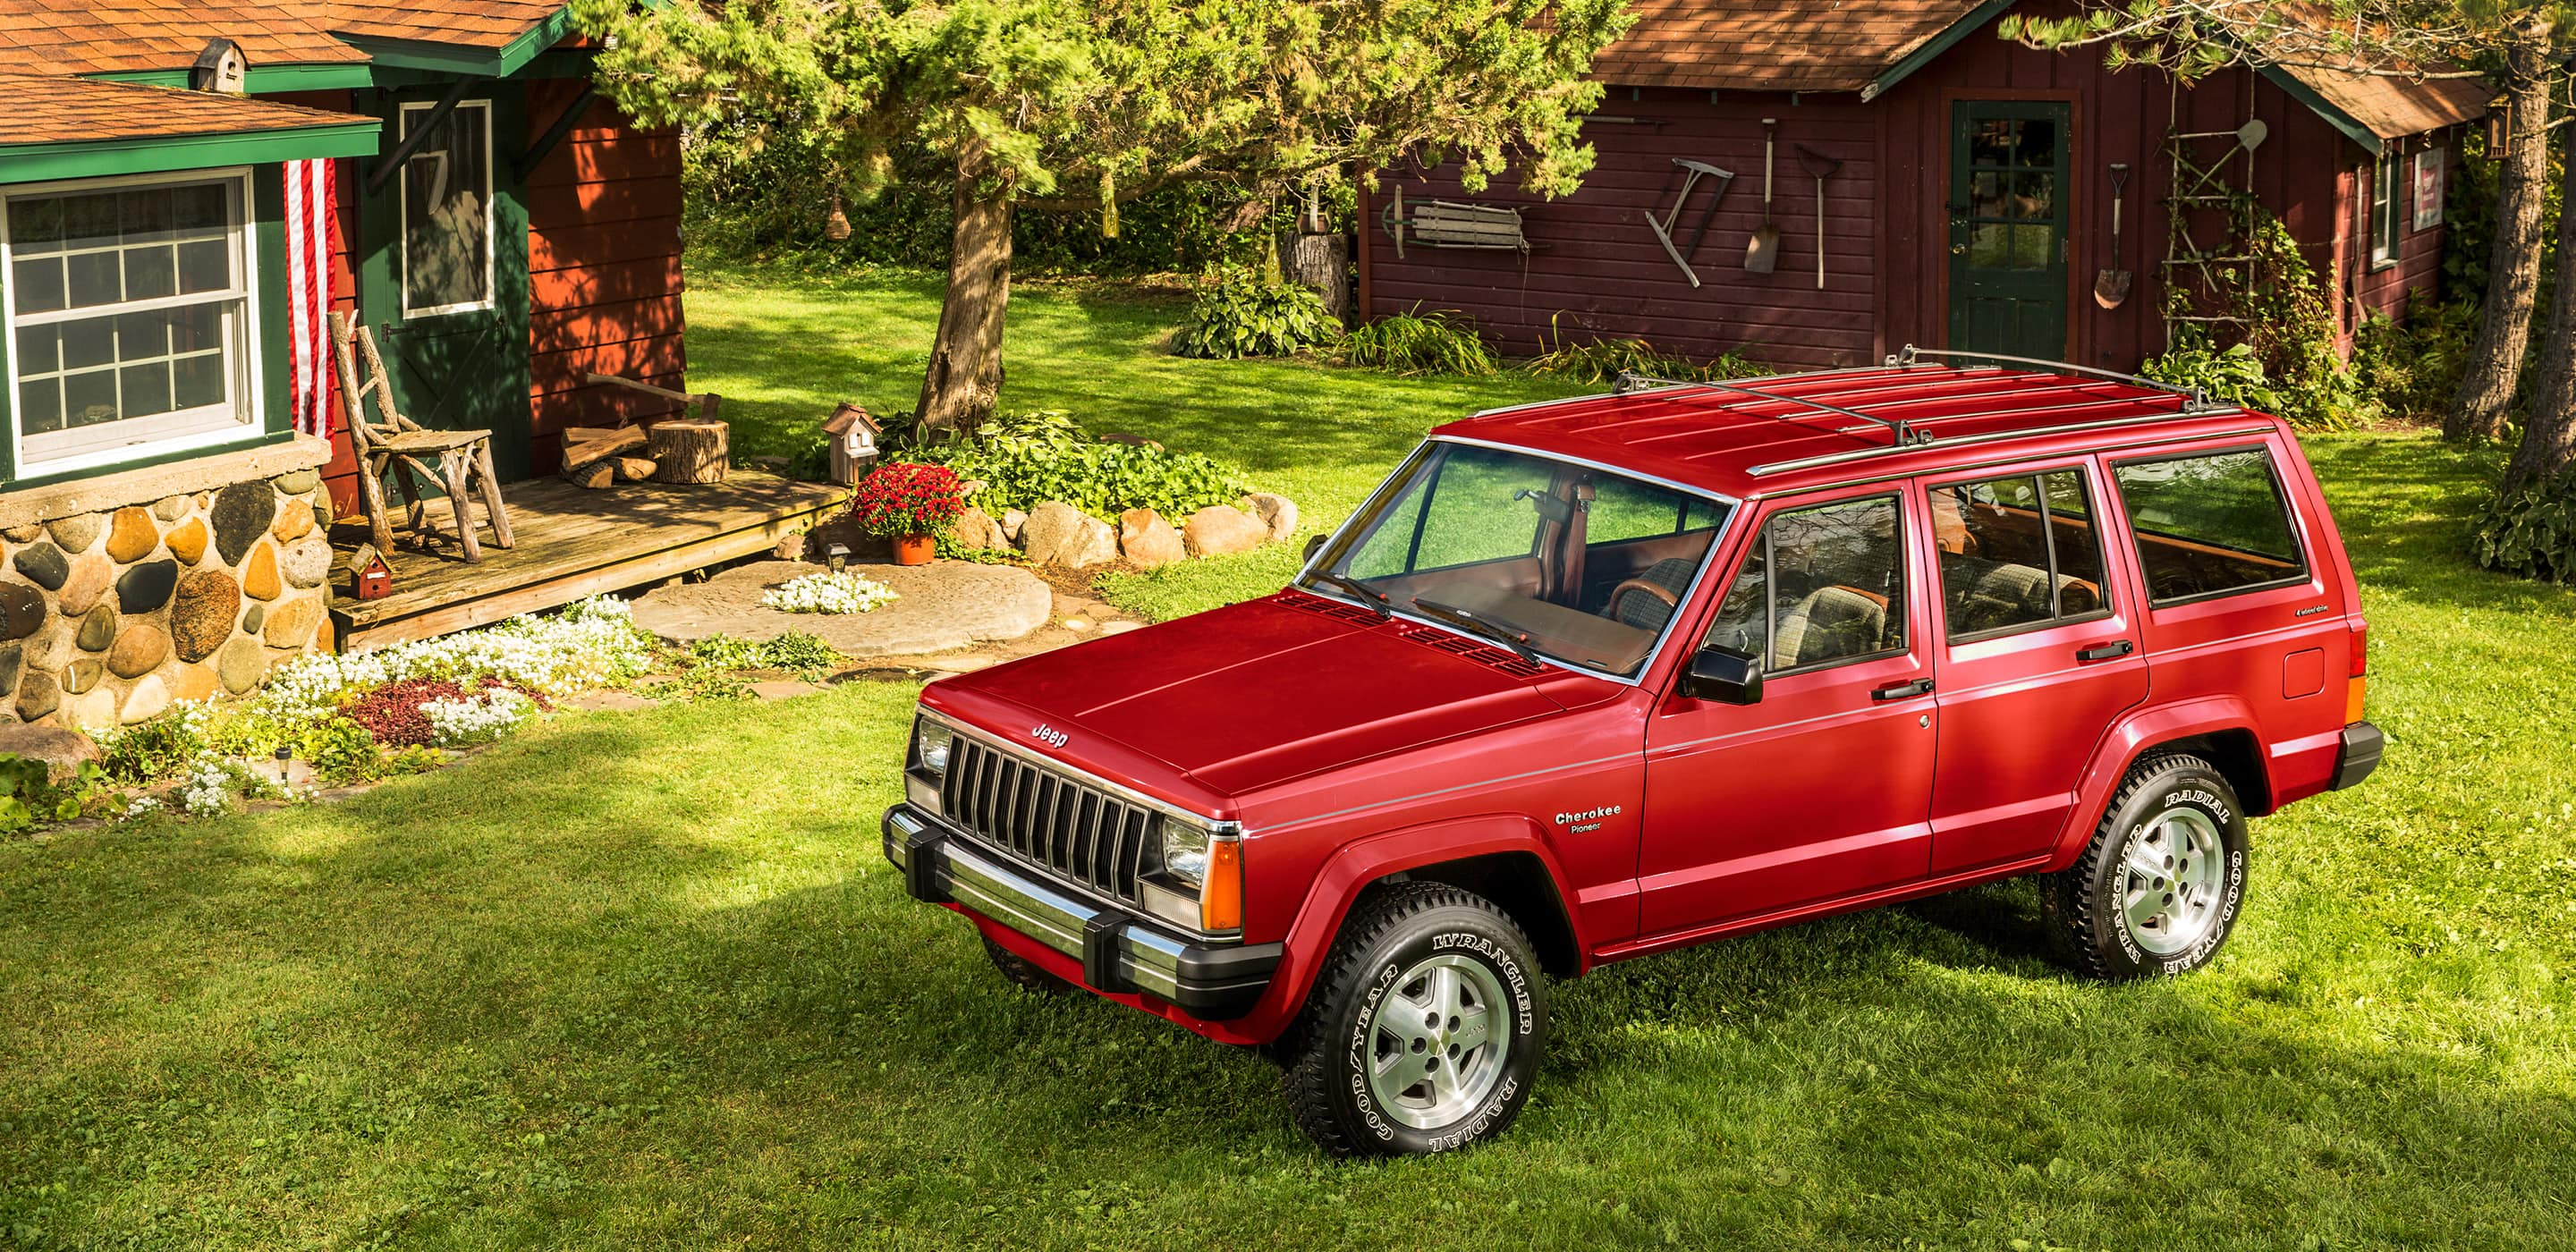 Jeep Truck And Grand Wagoneer Shop Manual 1984 1985 1986